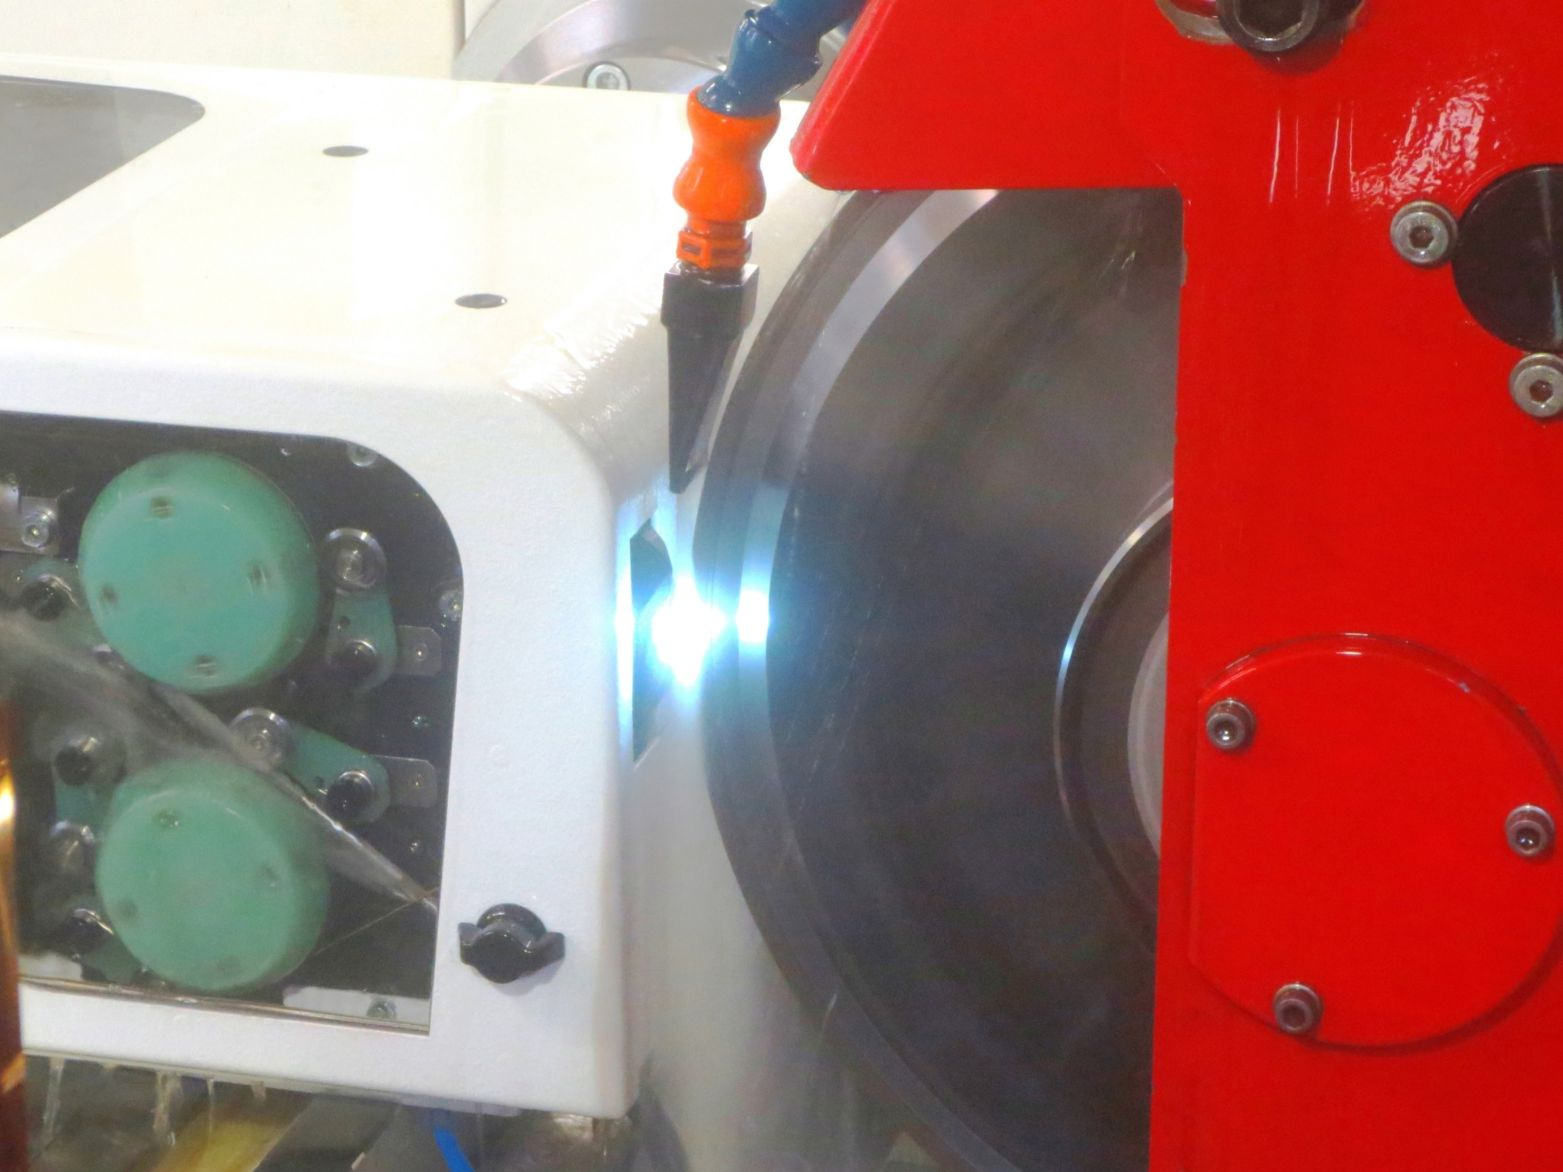 Studer WireDress EDM Grinding Wheel Dressing System